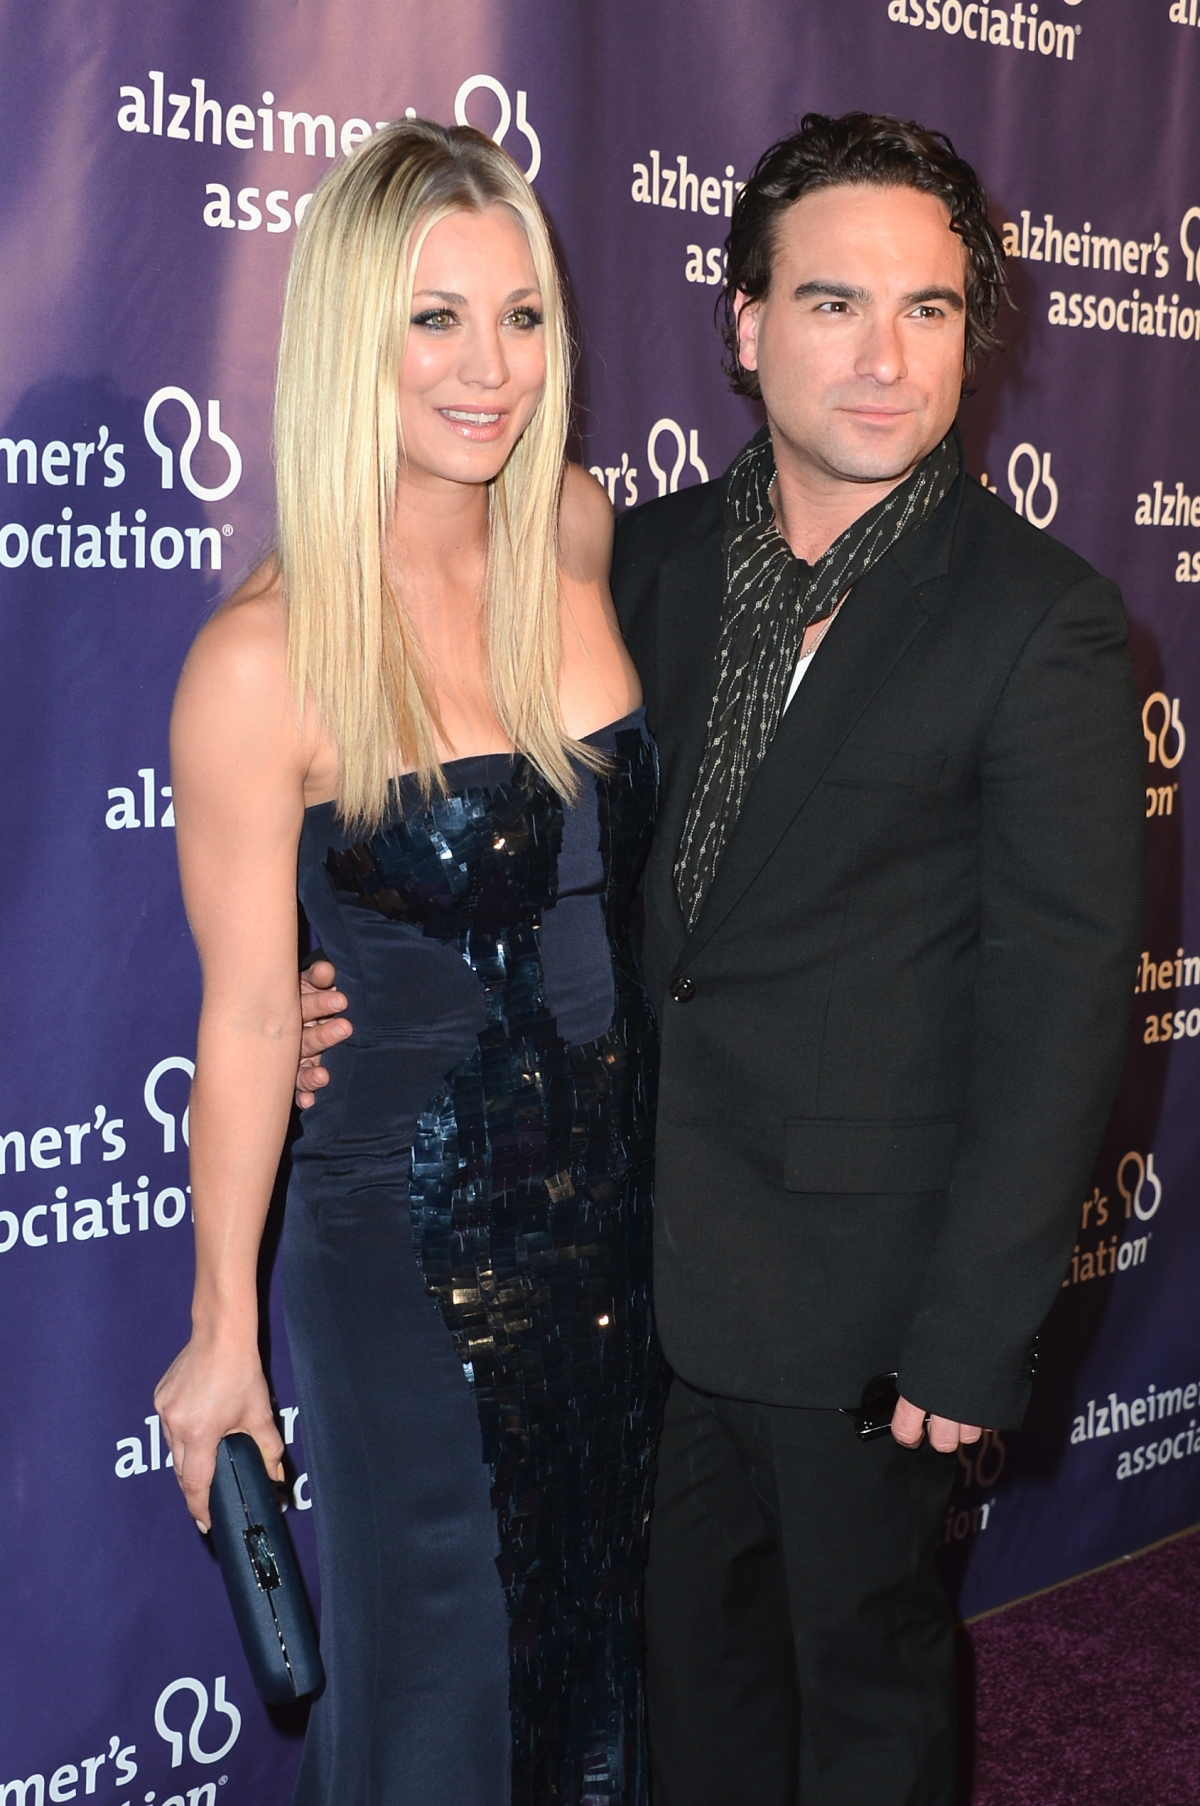 Kaley Cuoco and Johnny Galecki